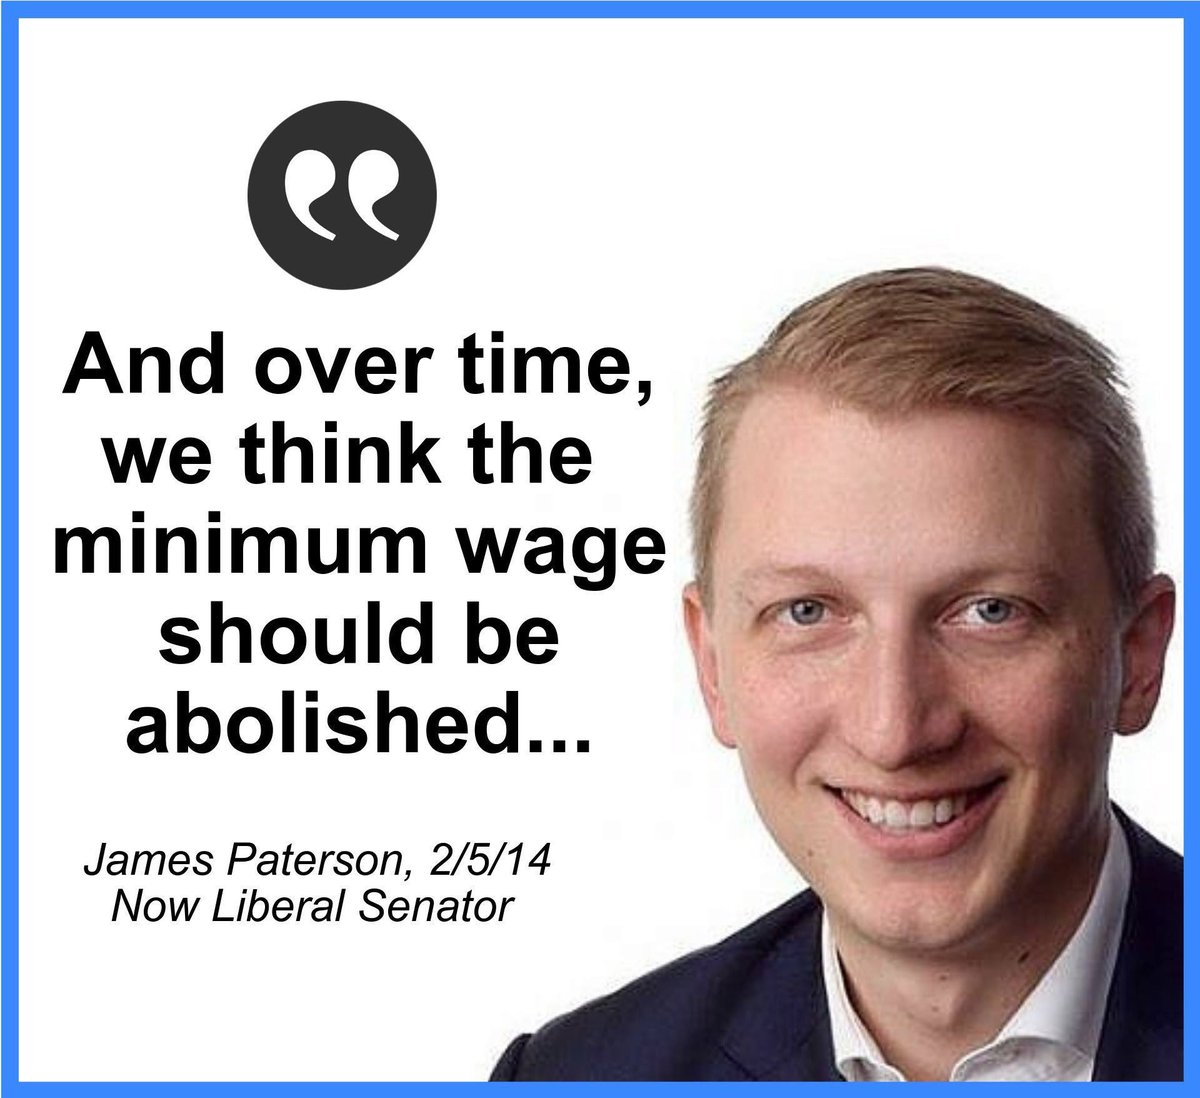 Today it was revealed that @TheIPA has been again lobbying parliamentarians to abolish the minimum wage. This would be familiar to the former IPA deputy executive director and now Liberal Senator, @SenPaterson. Scott Morrison must rule-out adopting the IPA's extreme agenda.